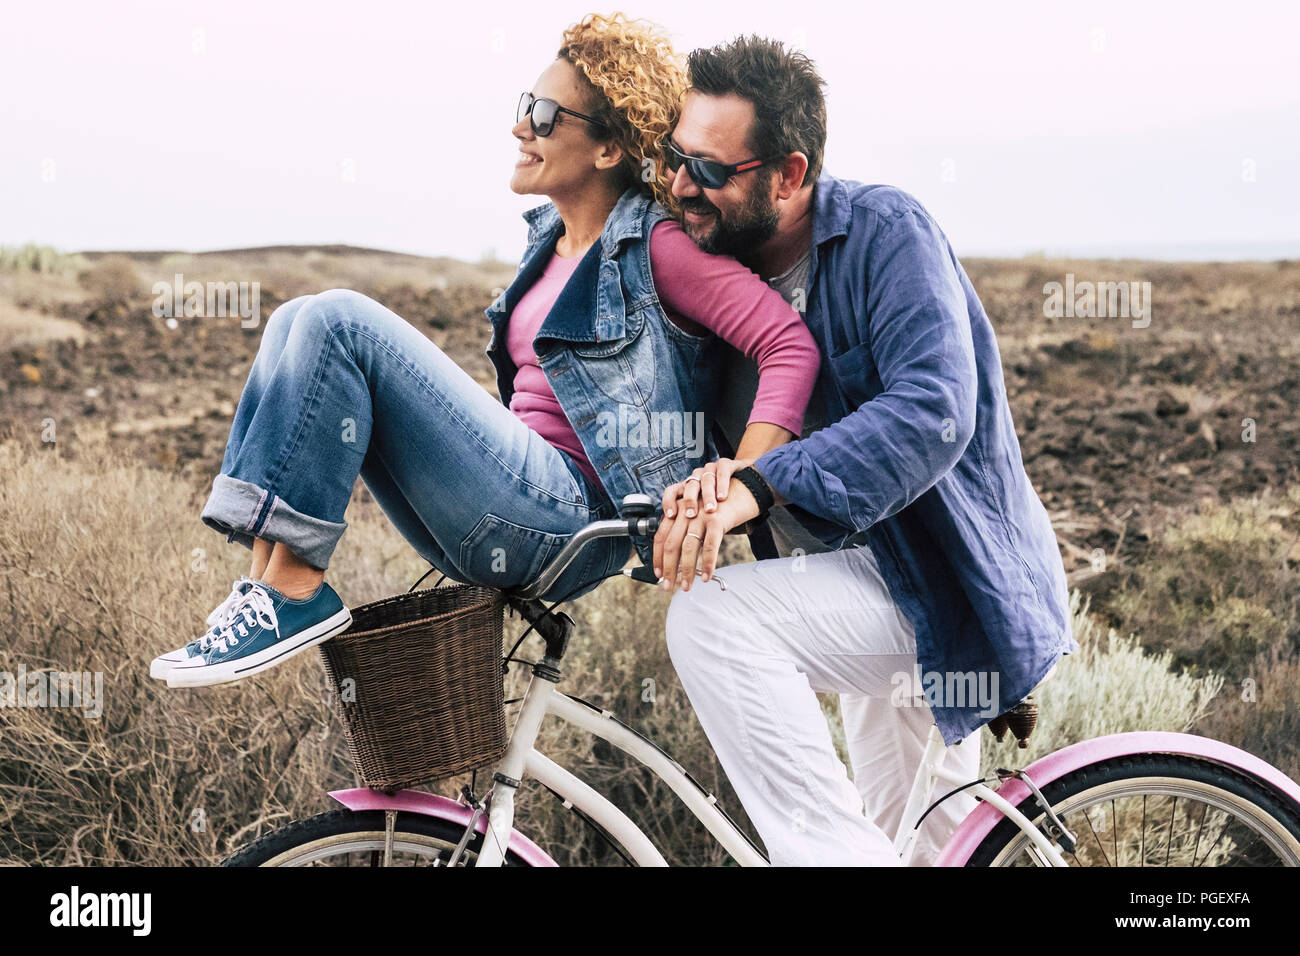 happy adult caucasian, couple having fun with bicycle in outdoor leisure activity. concept of active playful people with bike during vacation - everyd - Stock Image